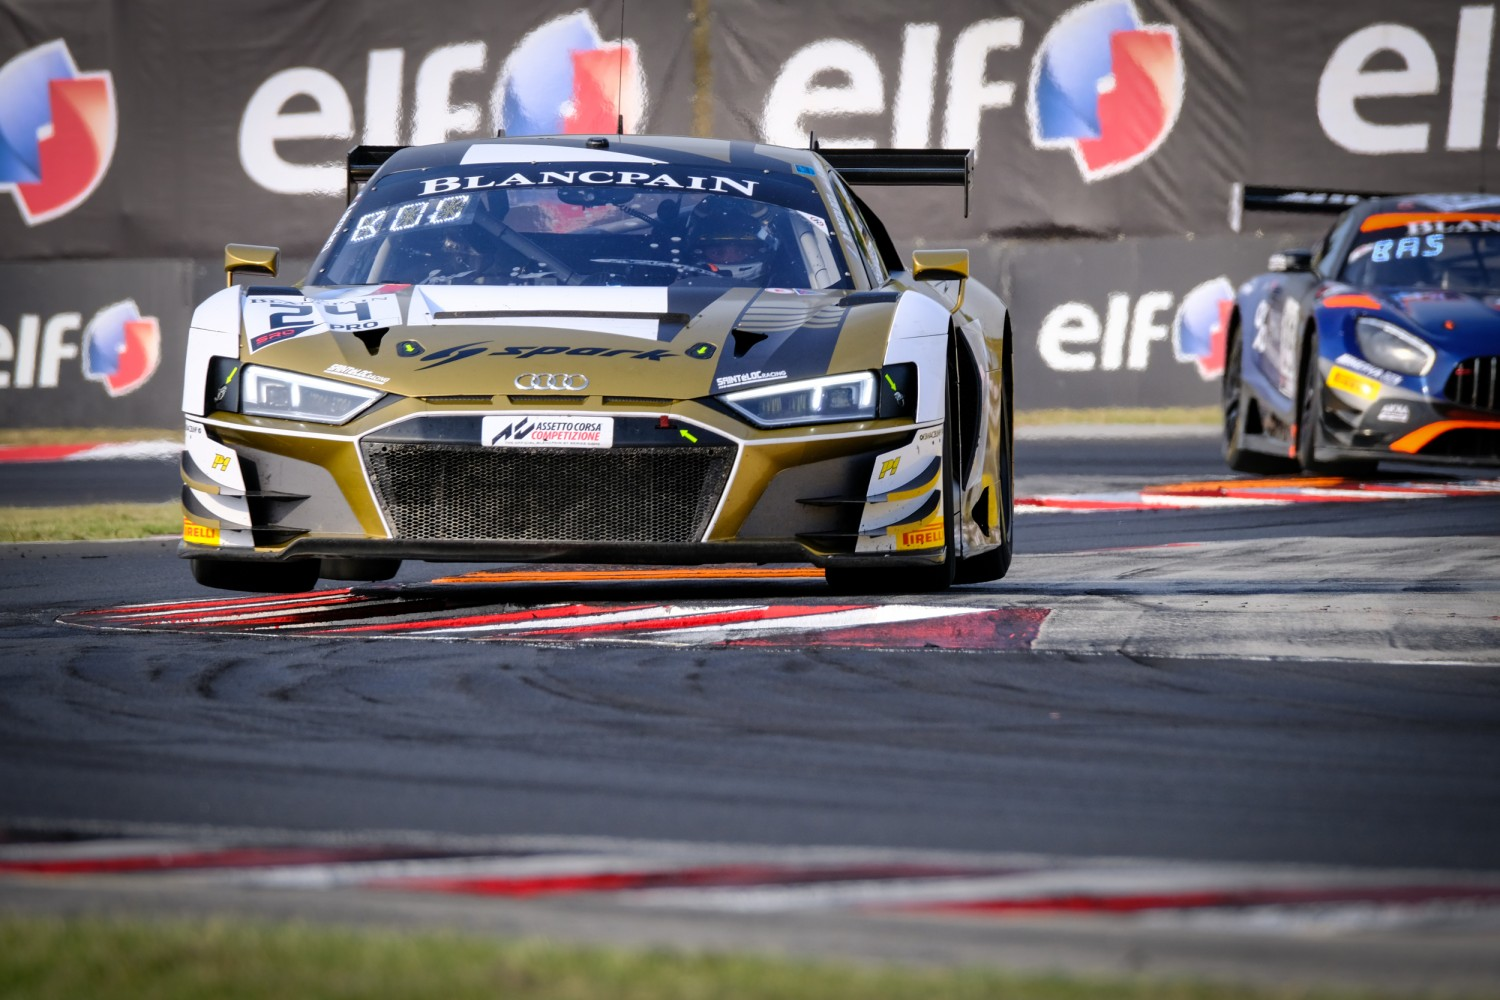 #24 Sainteloc Racing FRA Audi R8 LMS GT3 2019 Stéphane Ortelli MCO Dorian Boccolacci  FRA -, Free Practice 2  | SRO / Dirk Bogaerts Photography